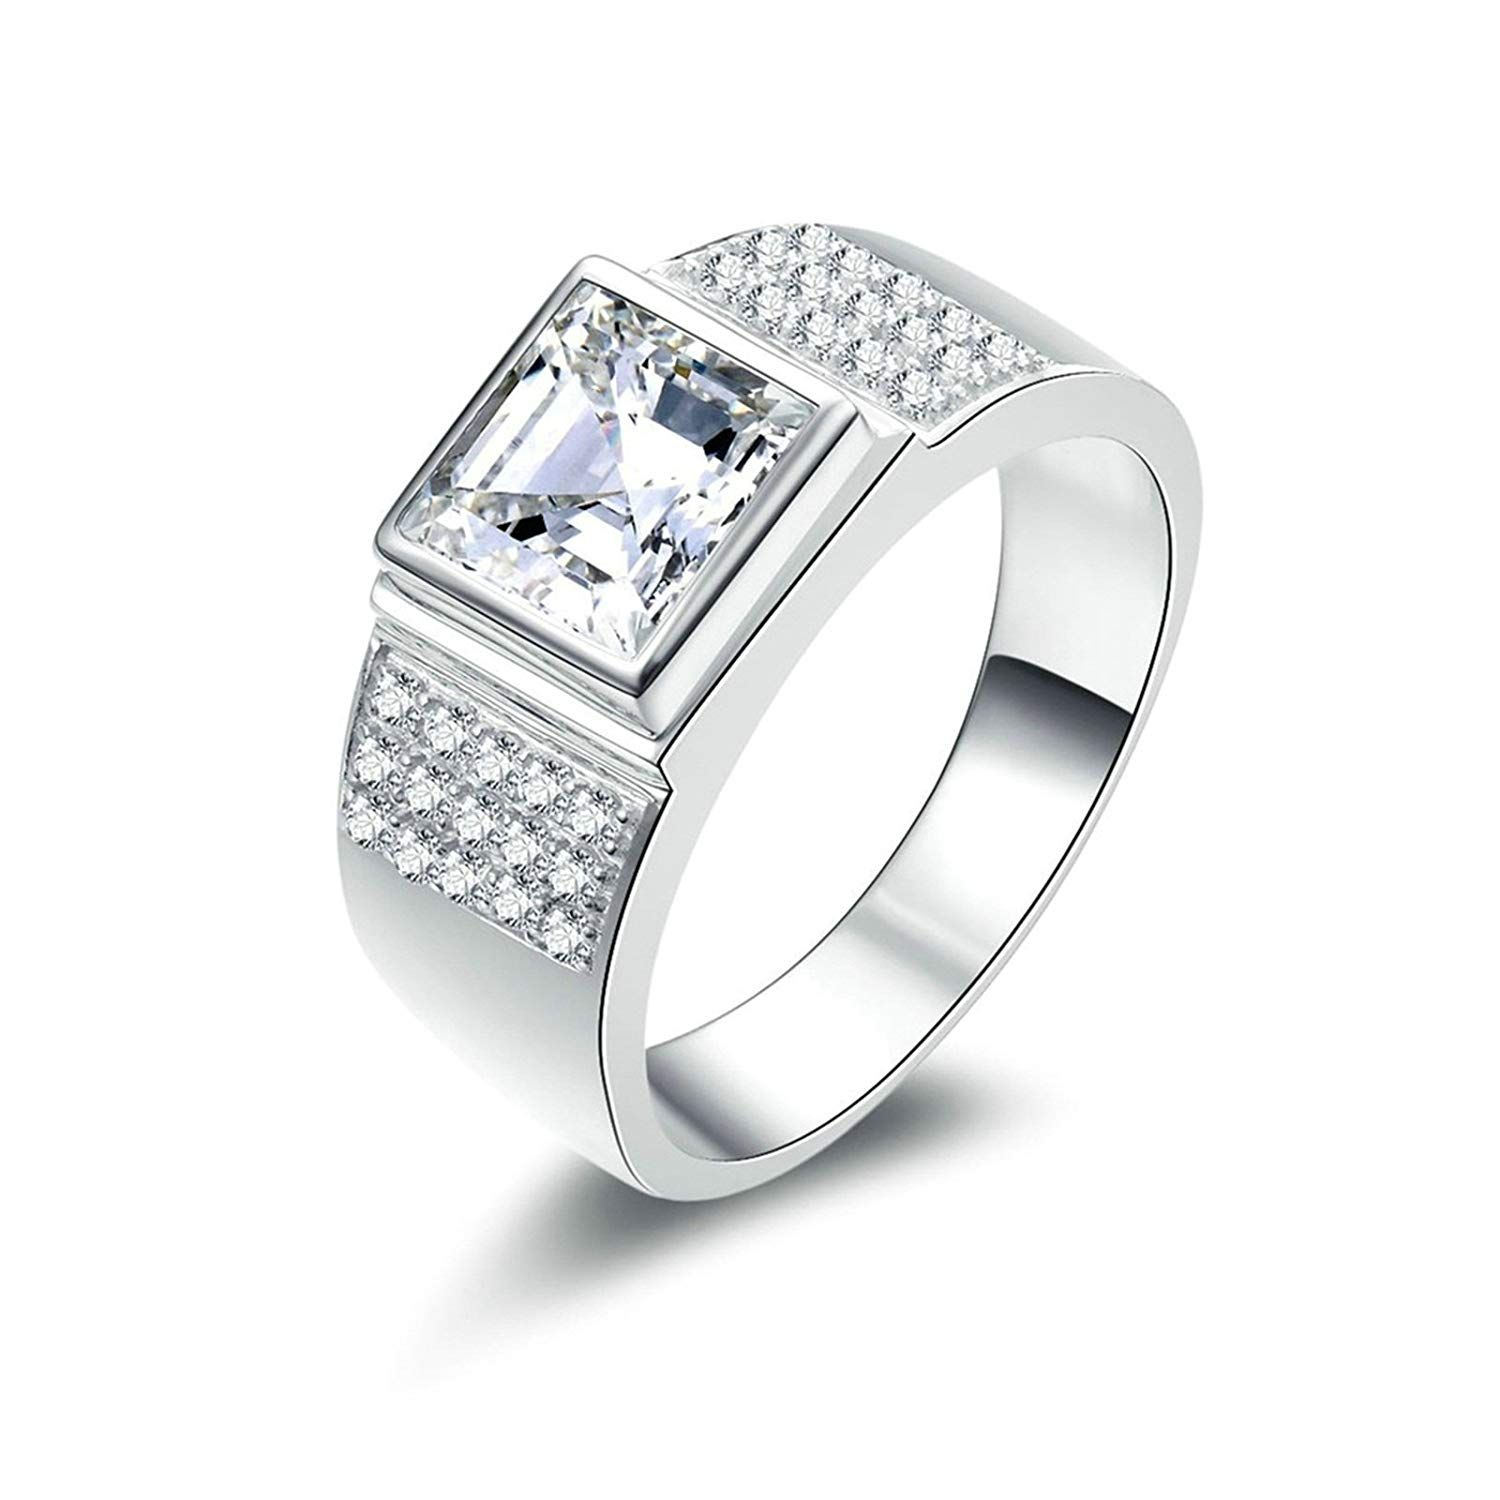 AMDXD Jewellery 925 Sterling Silver Promise Rings Girls Square Cut Cubic Zirconia Square Shape Ring